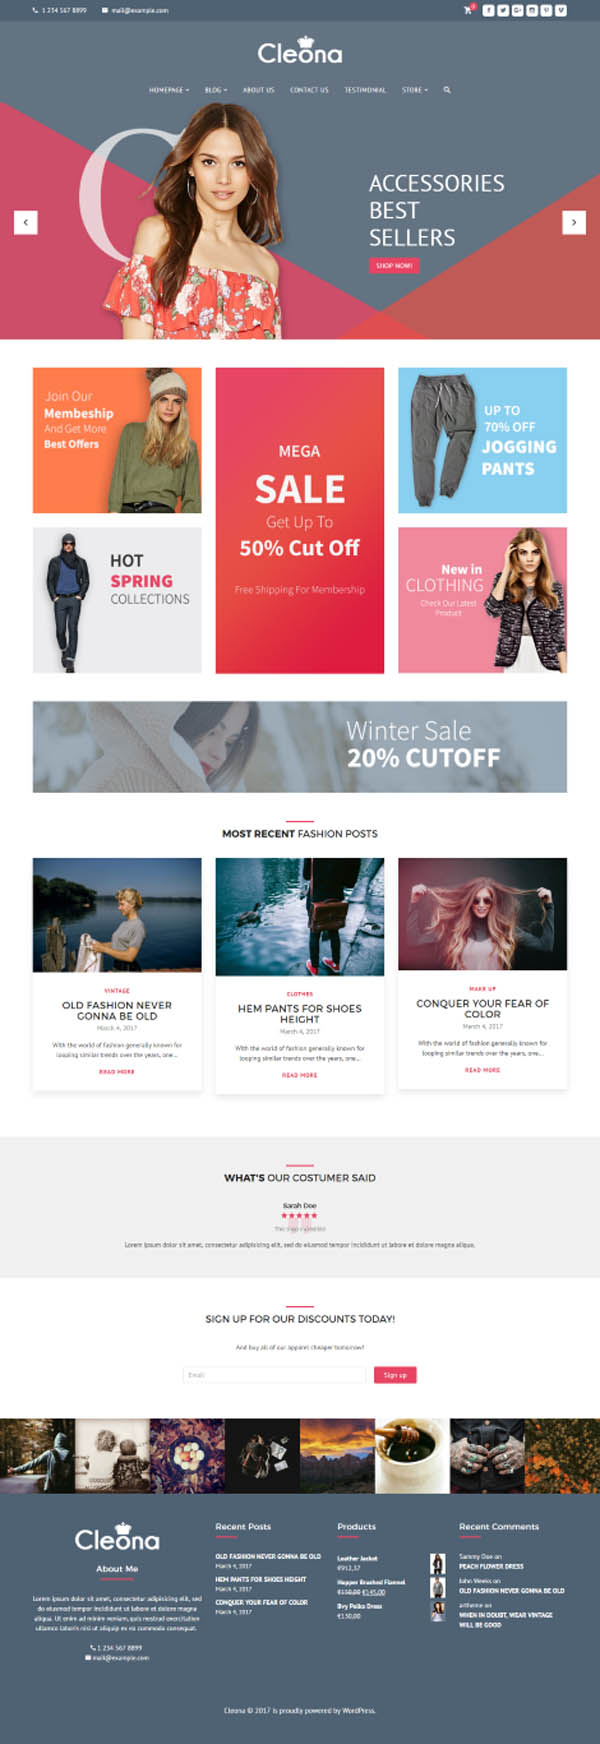 Cleona : Responsive E-Commerce WordPress Theme